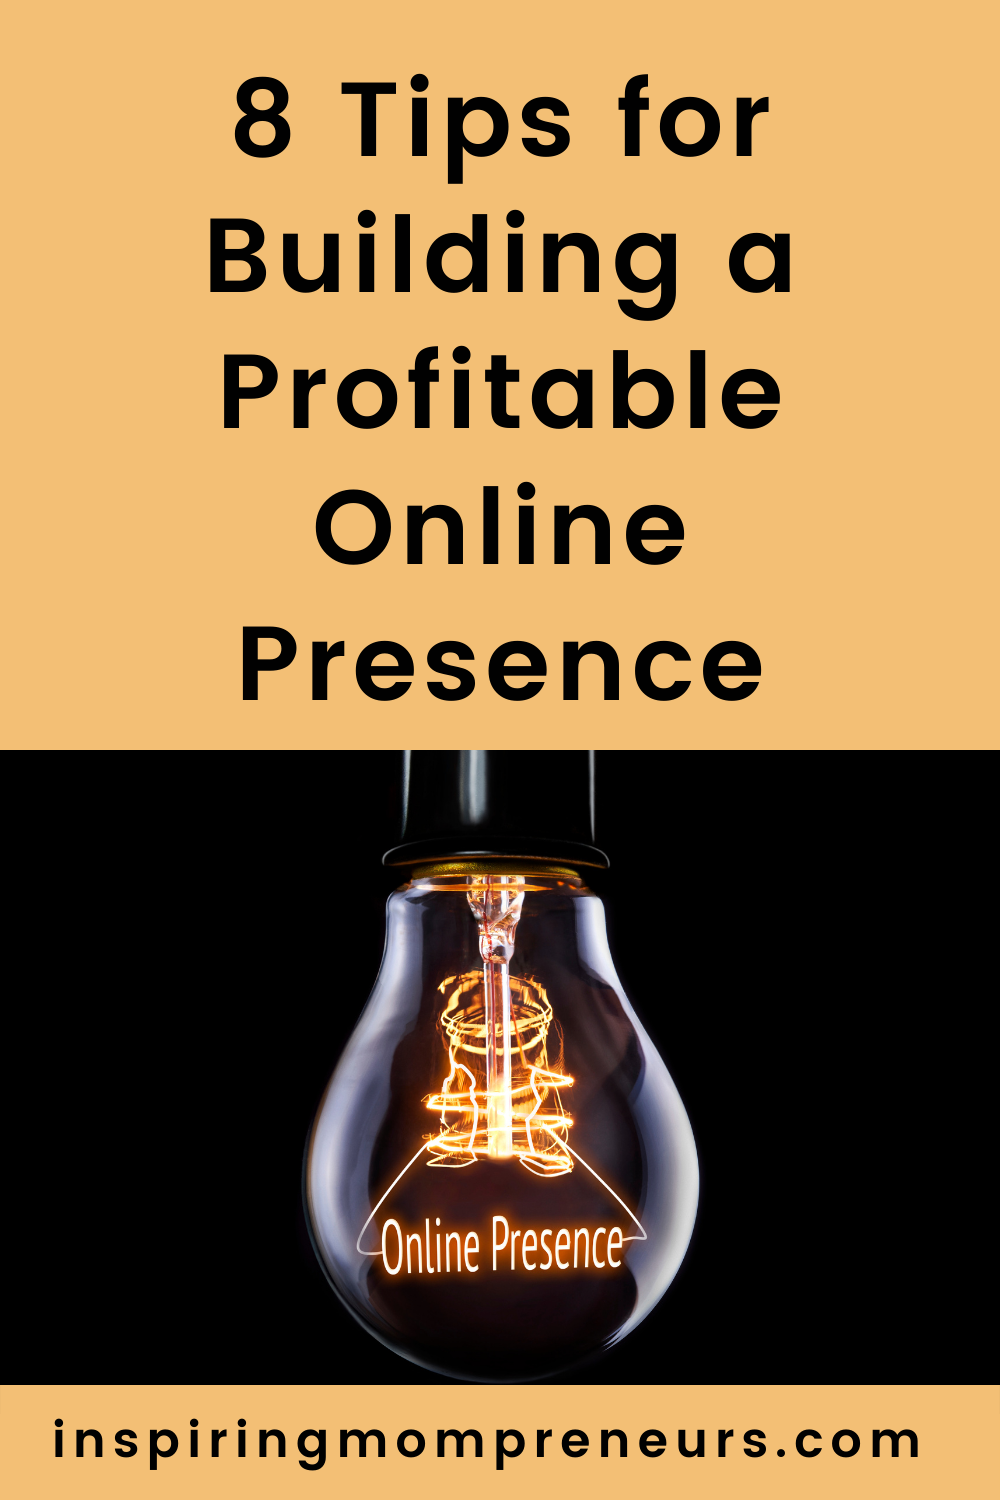 Building a profitable online presence is not easy but by using the right tools and strategies you can grow your business exponentially and save money.